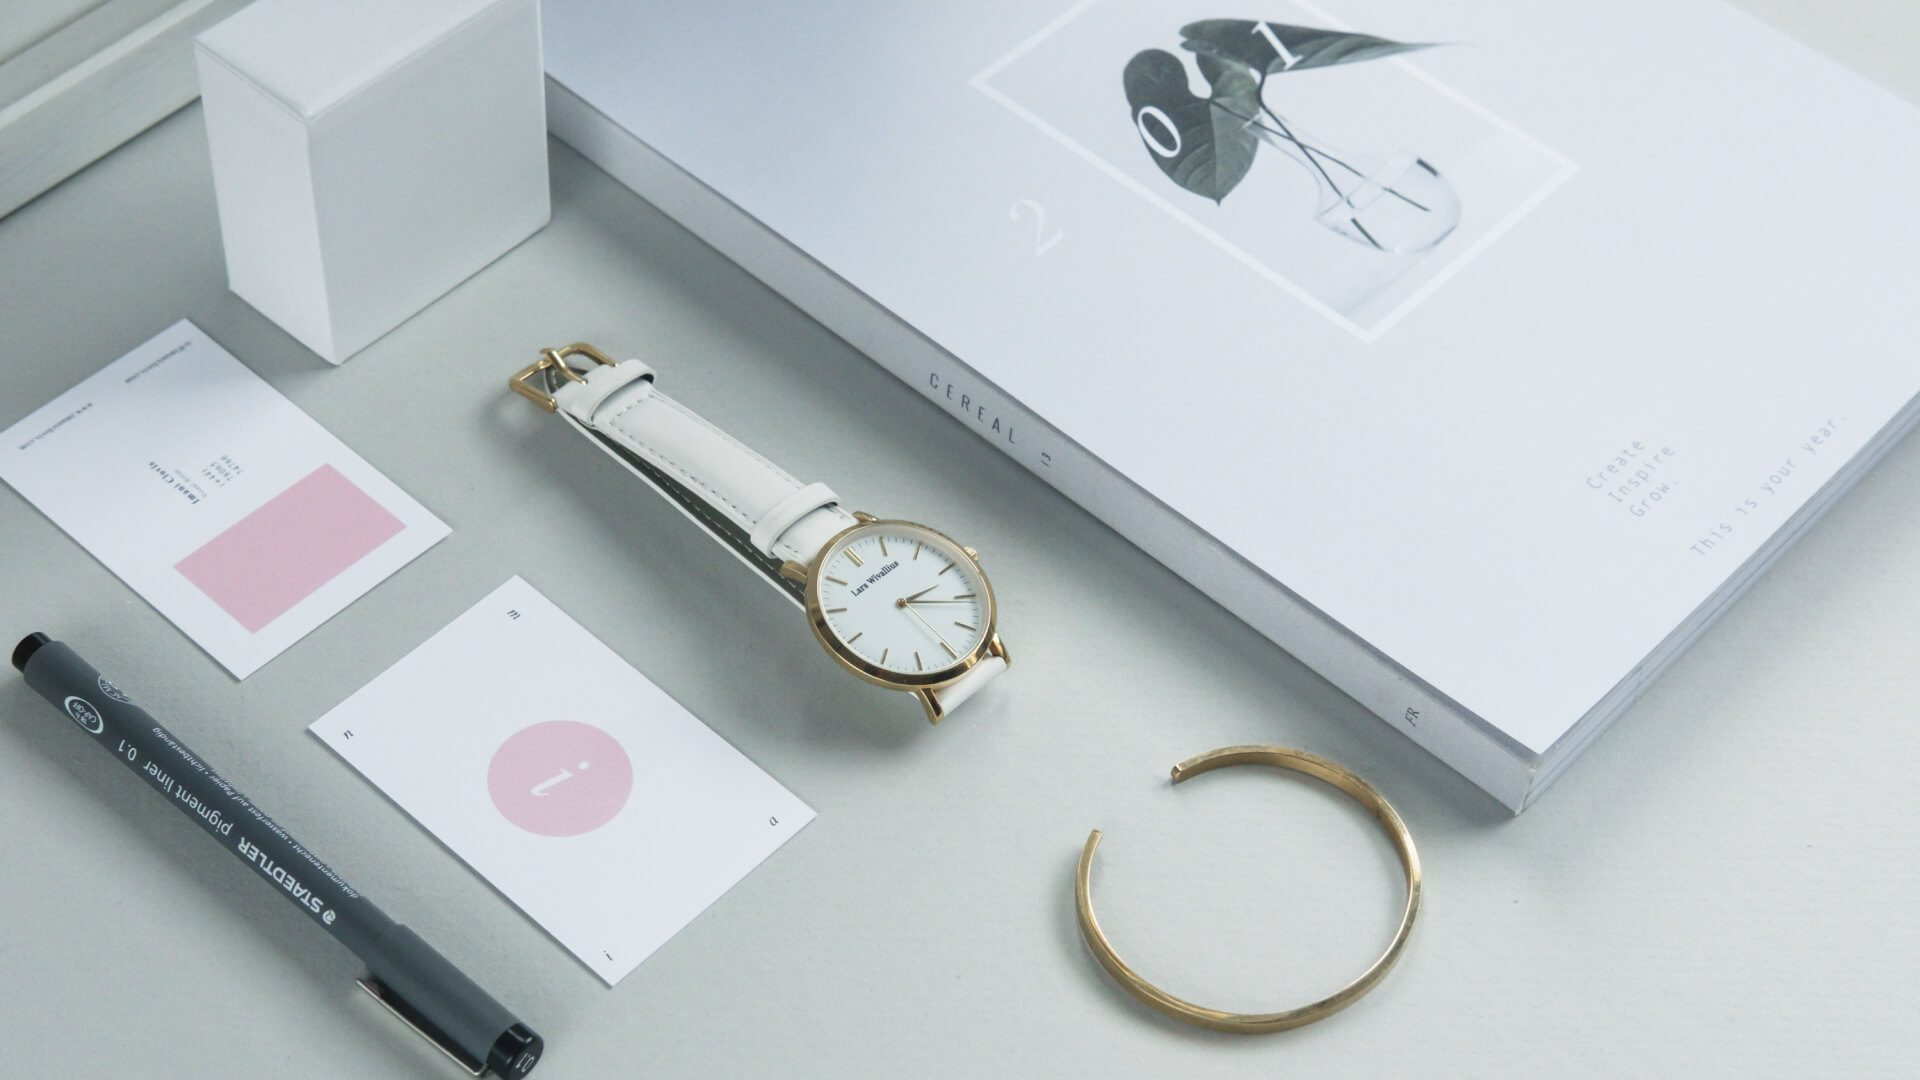 picture of watch and book titled digital or offset printing